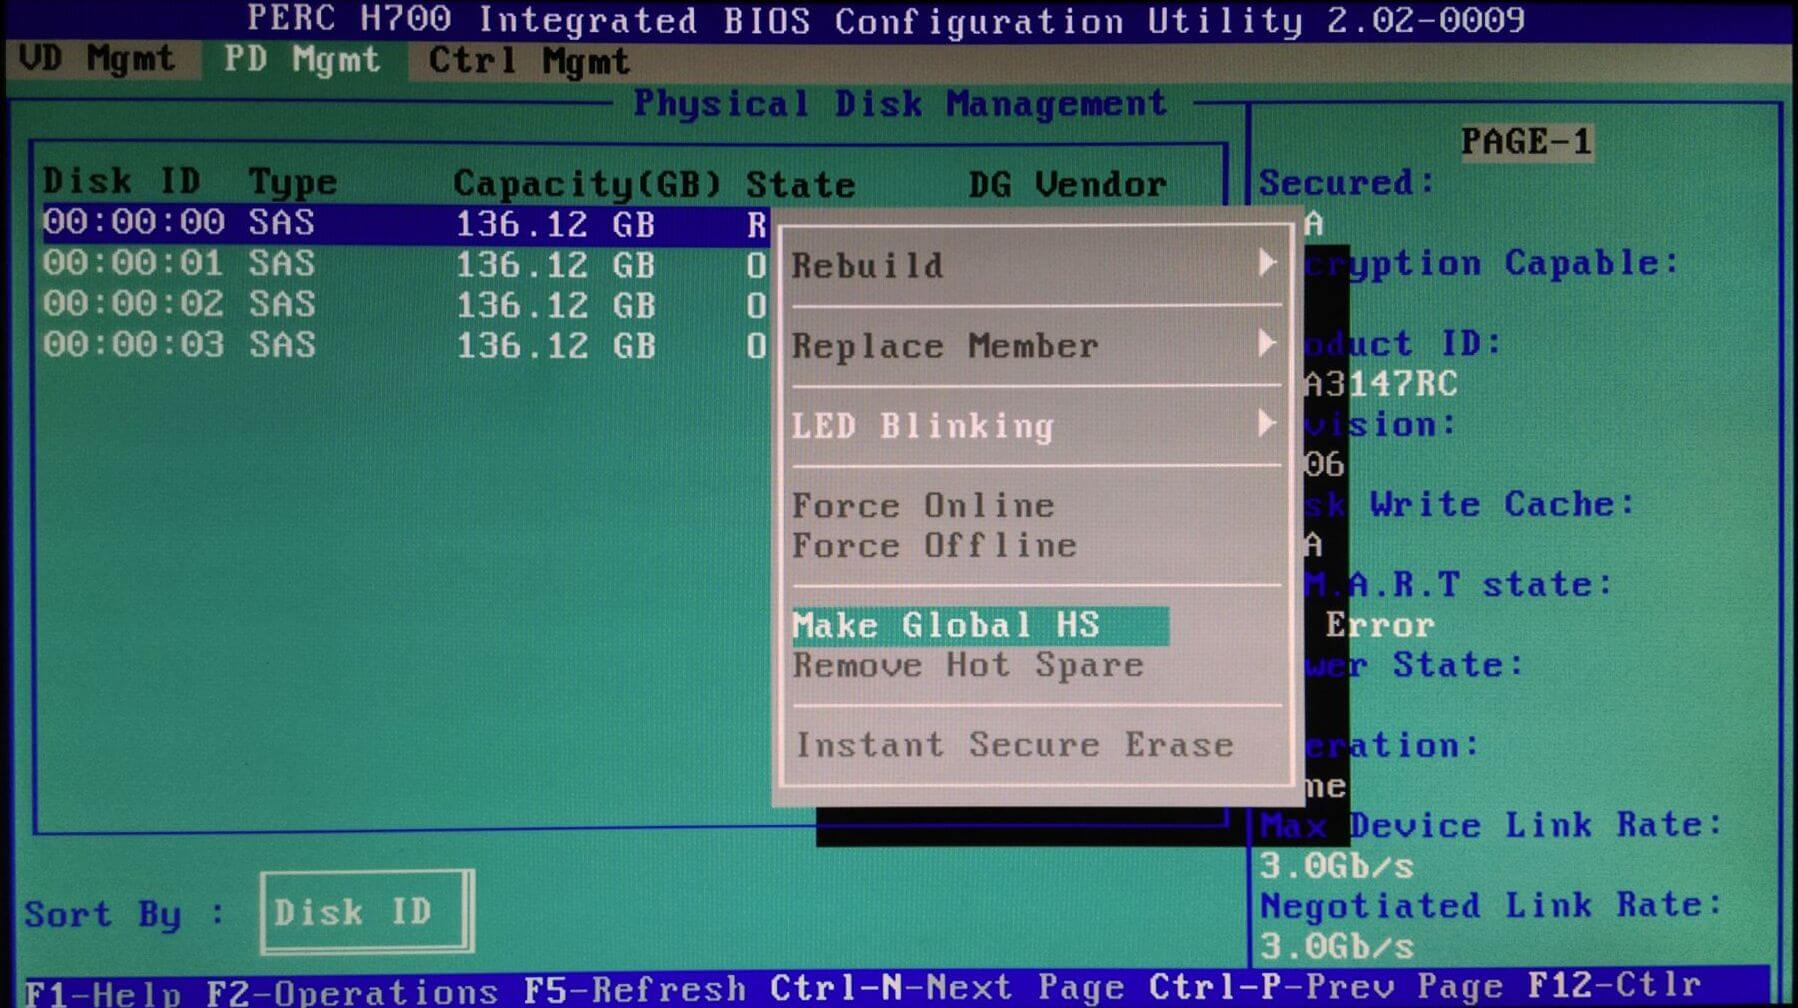 PERC H700 Physical Disk Management - disk 0 F2 Make Global HS